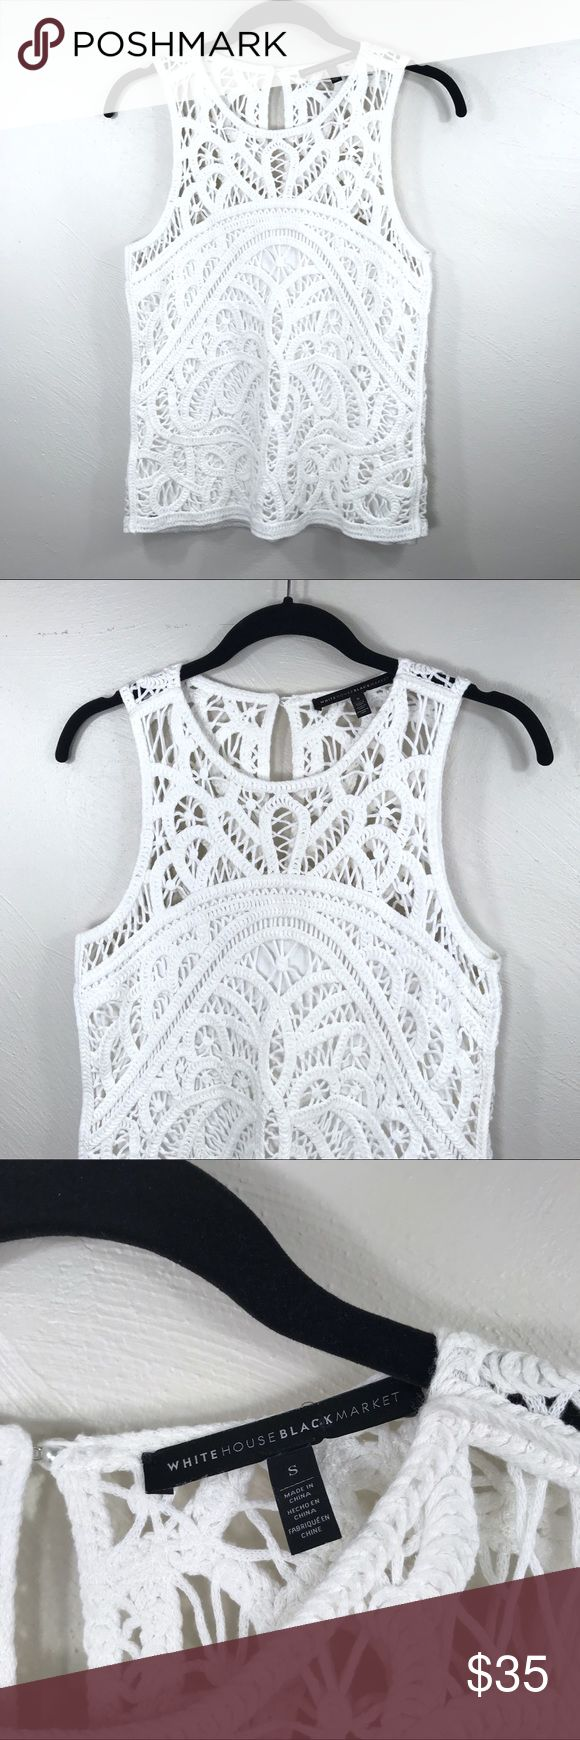 """WHBM Crochet Top Brand: White House Black Market Description: Stunning crochet knit sleeveless top Size: Small Color: Cream Chest Measurement: 16.5"""" across laying flat Length: 23.5"""" from shoulder to hem Material: 92% cotton / 8% other Condition: Excellent, pre-owned White House Black Market Tops Tank Tops"""